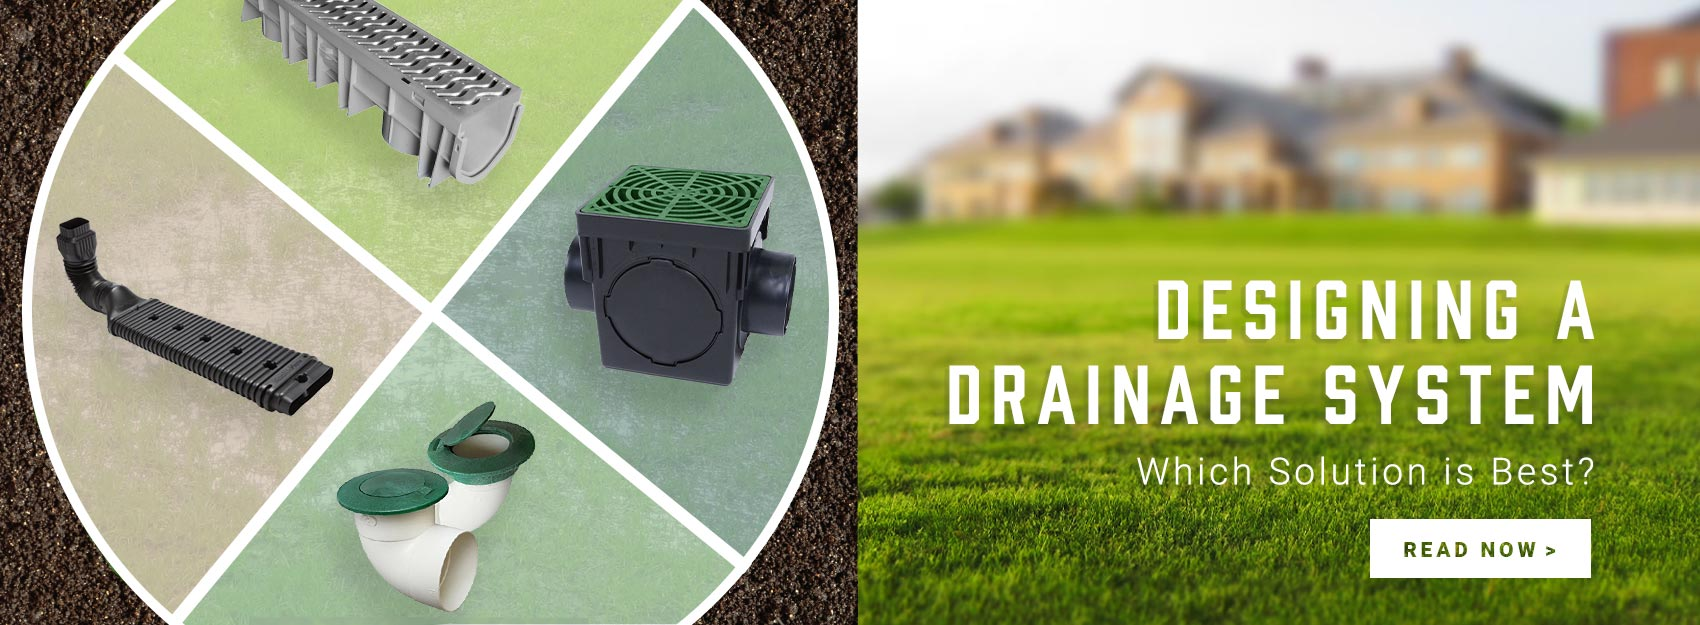 Designing a Home Drainage System: Which Solution is Best?